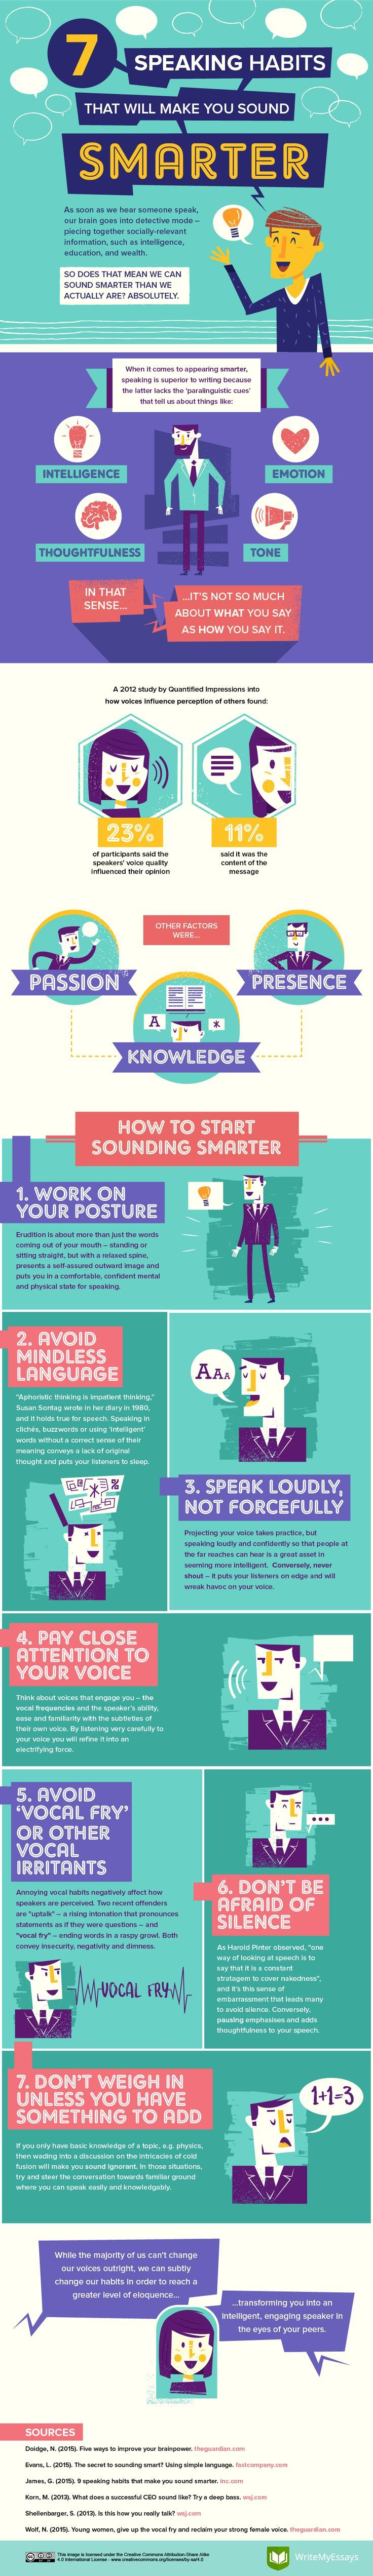 7 Speaking Habits That Will Make You Sound Smarter #infographic #Speaking #PublicSpeaking